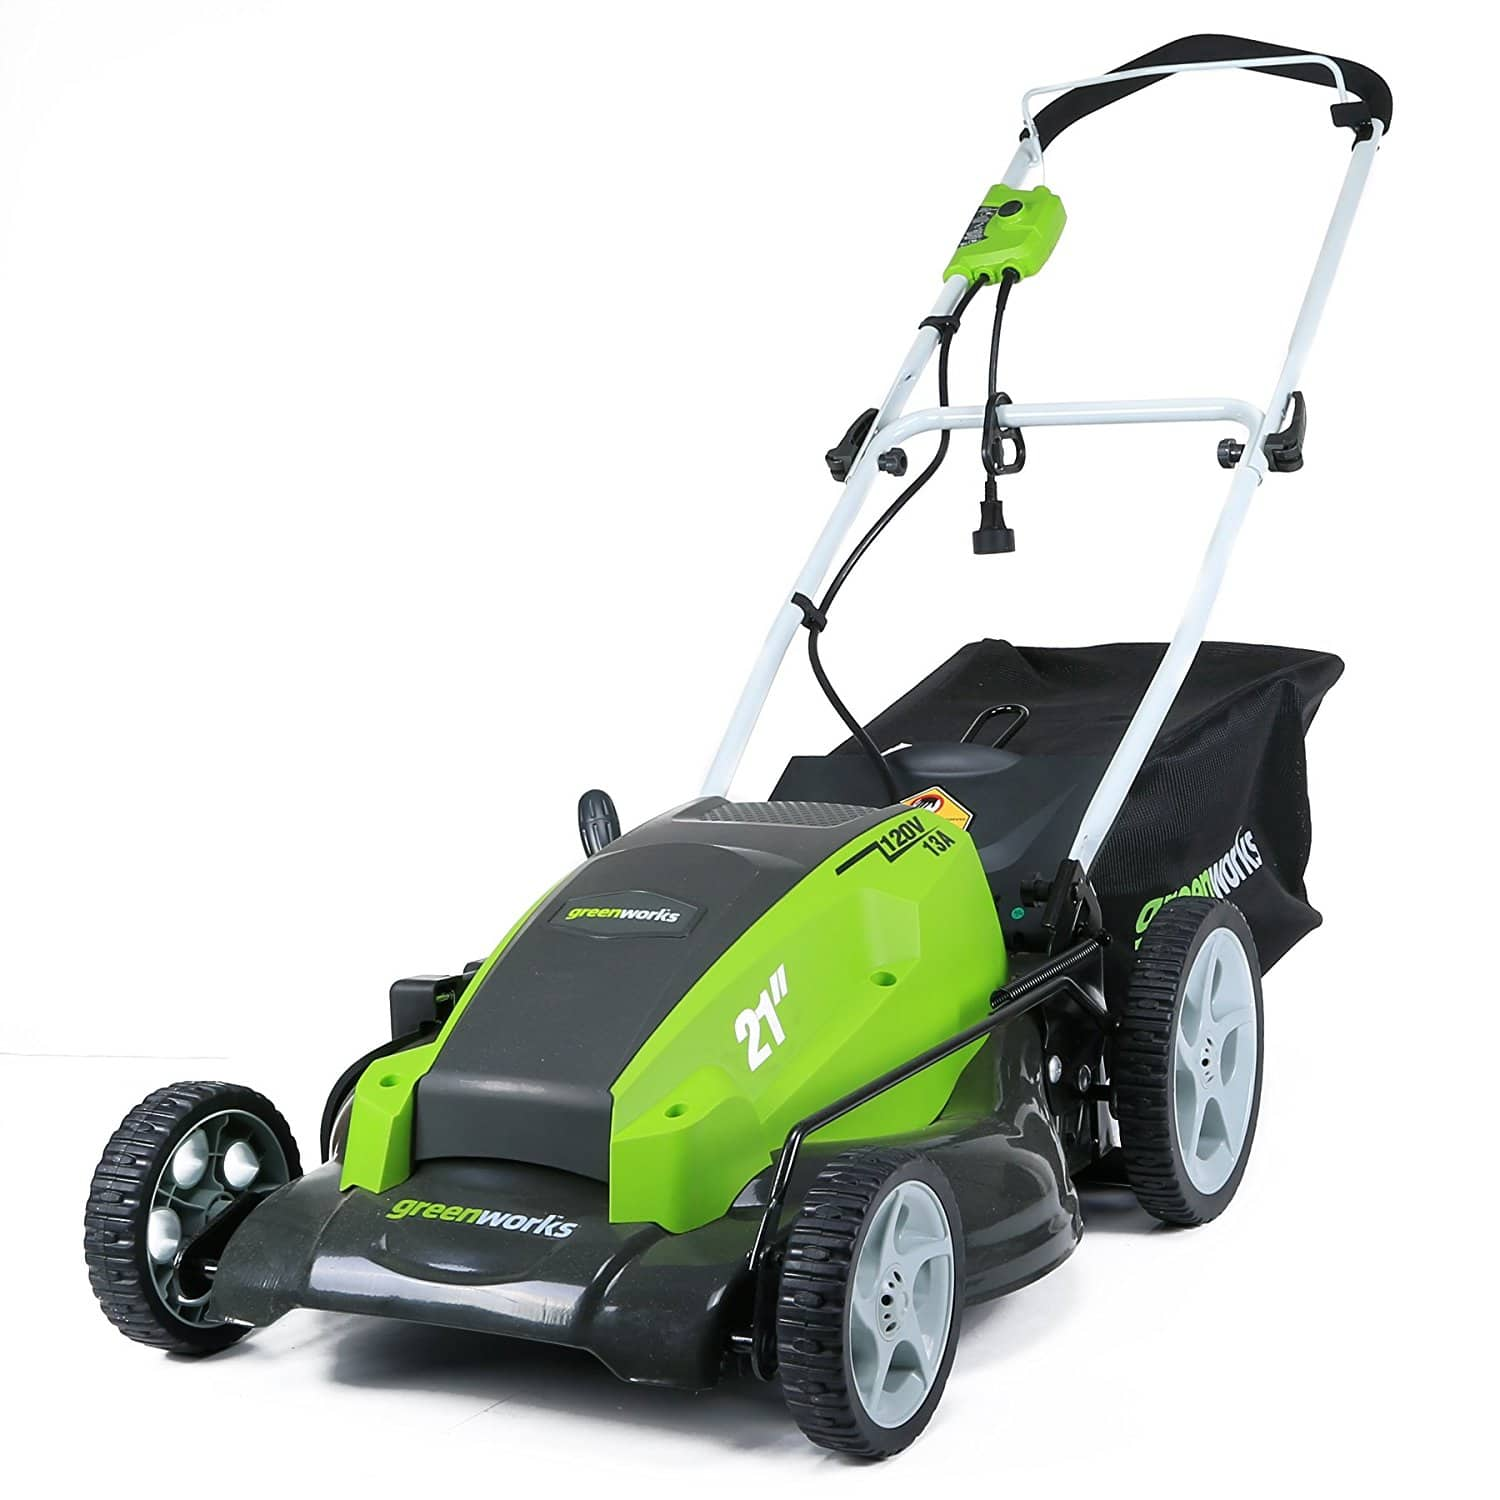 "GreenWorks 13 Amp 21"" Corded Lawn Mower Slickdeals"